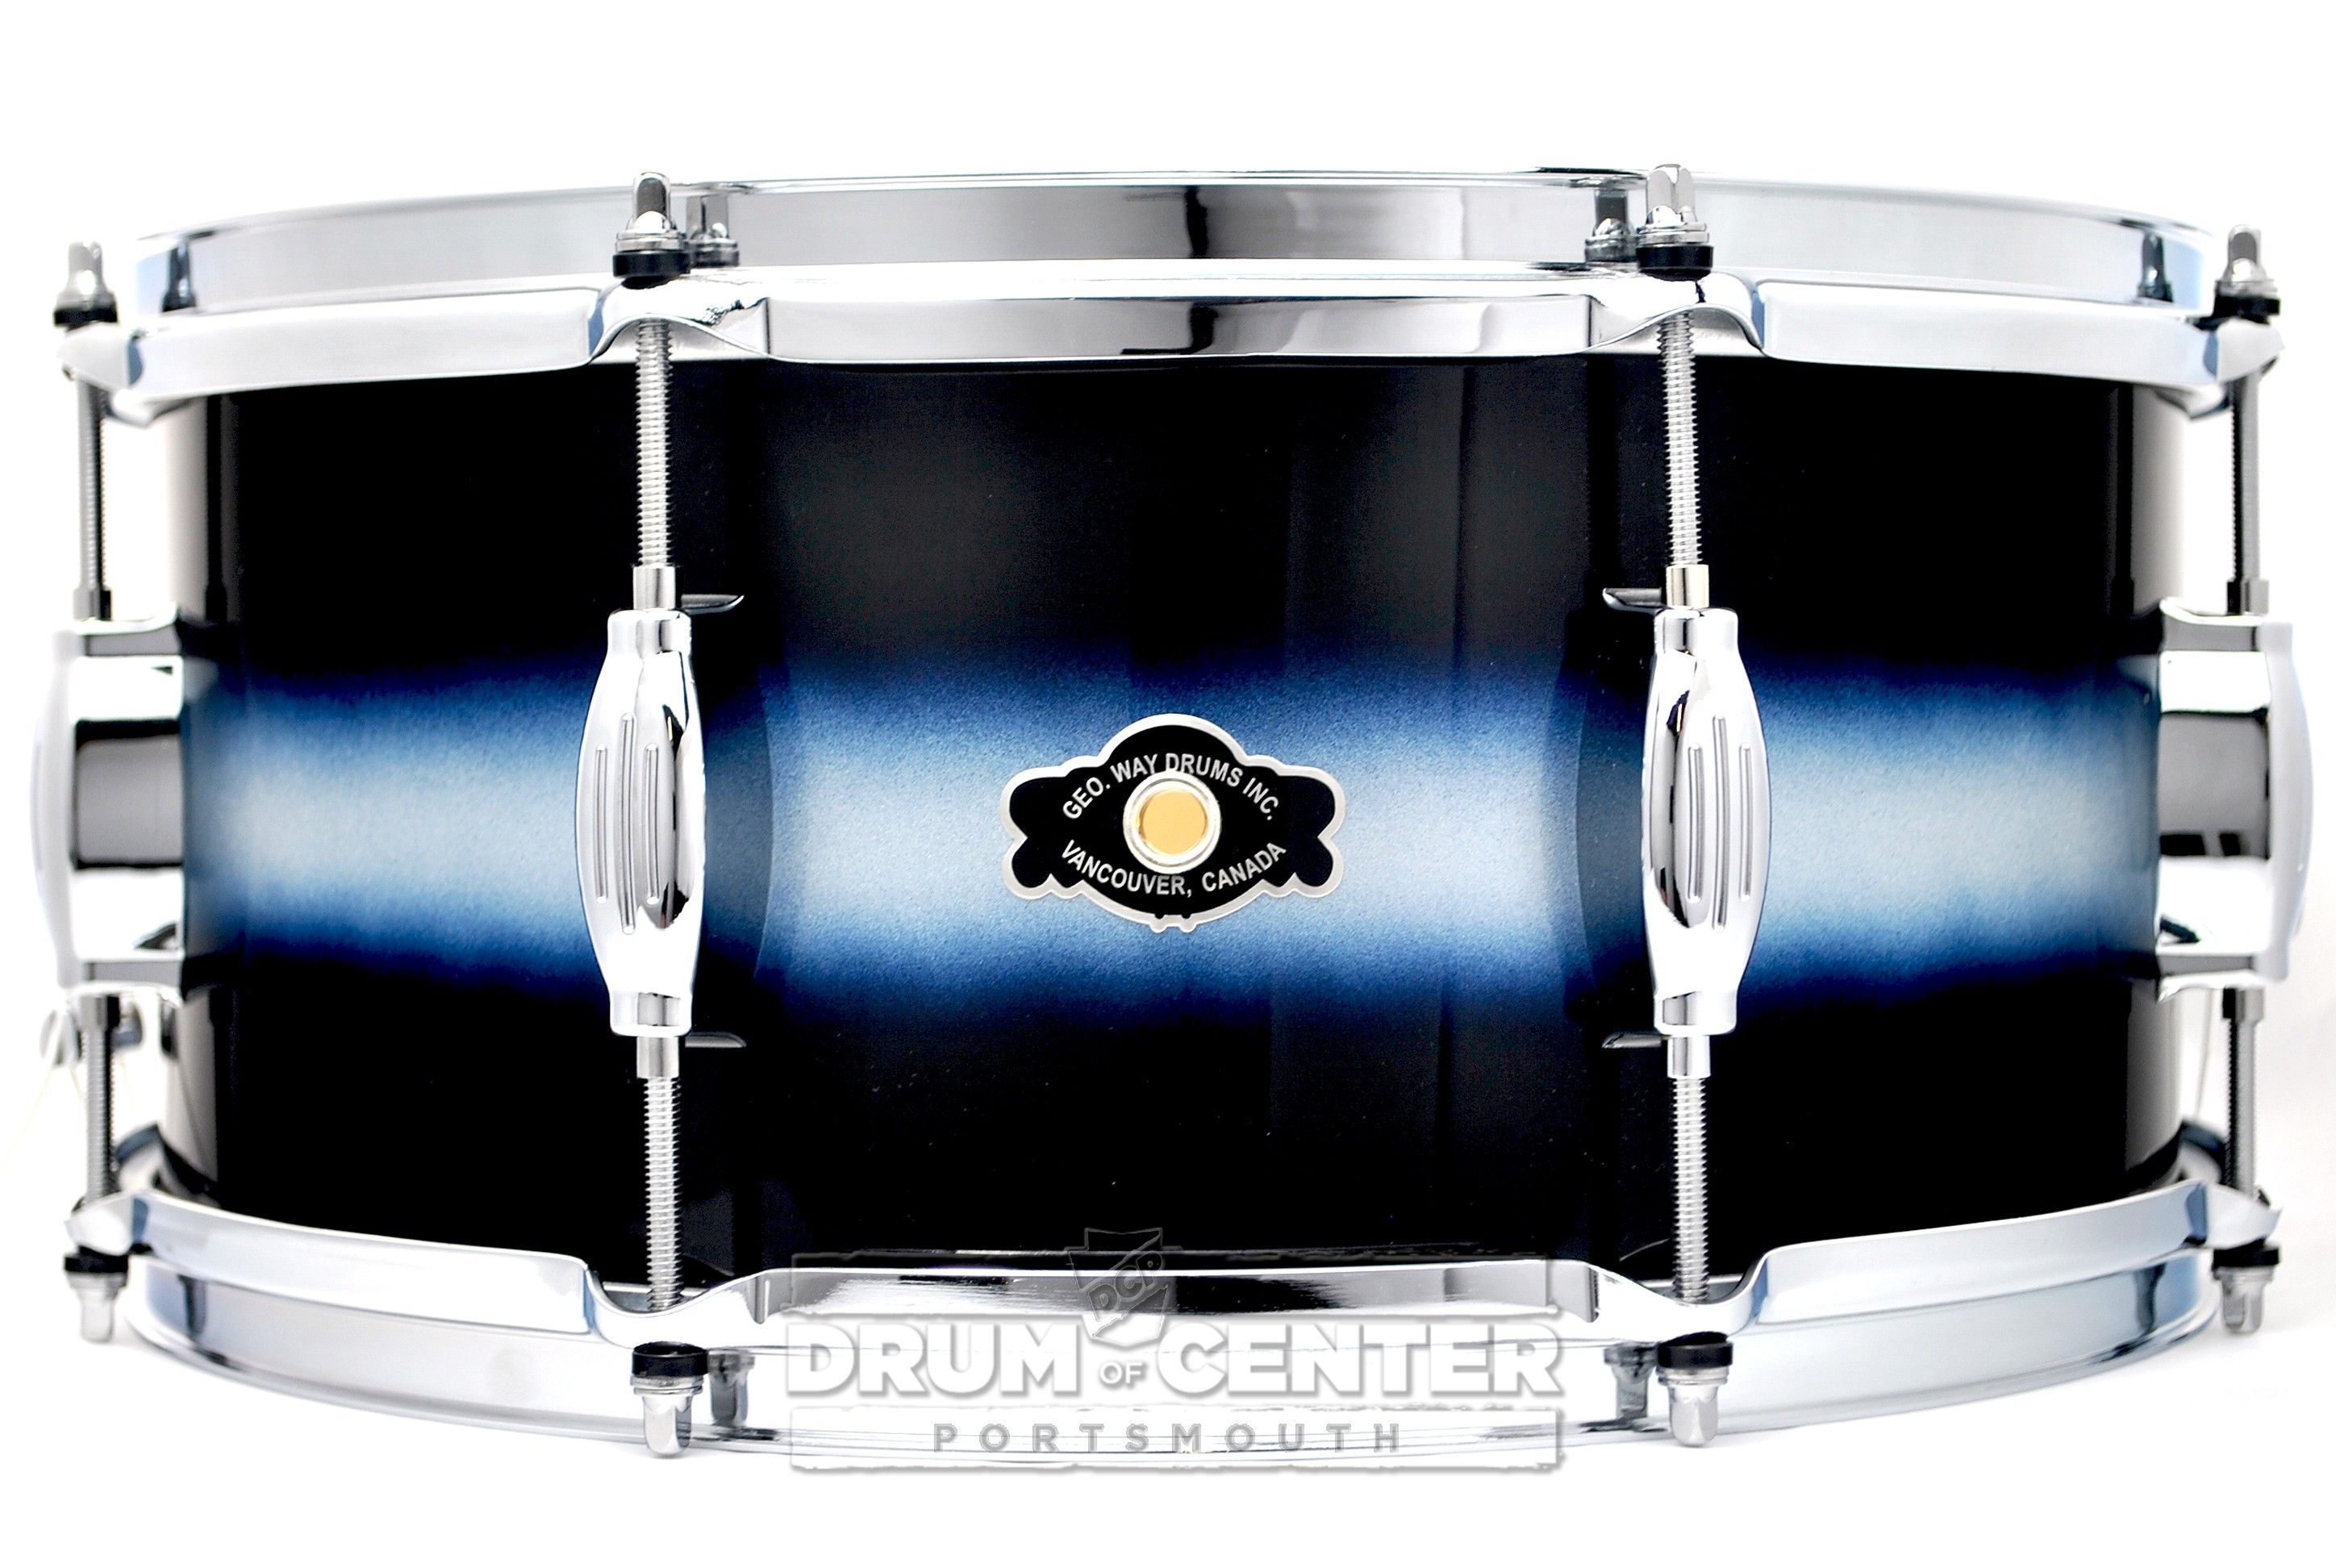 george way studio snare drum 14x6 5 blue duco in 2019 the snare wall snare drum drums. Black Bedroom Furniture Sets. Home Design Ideas